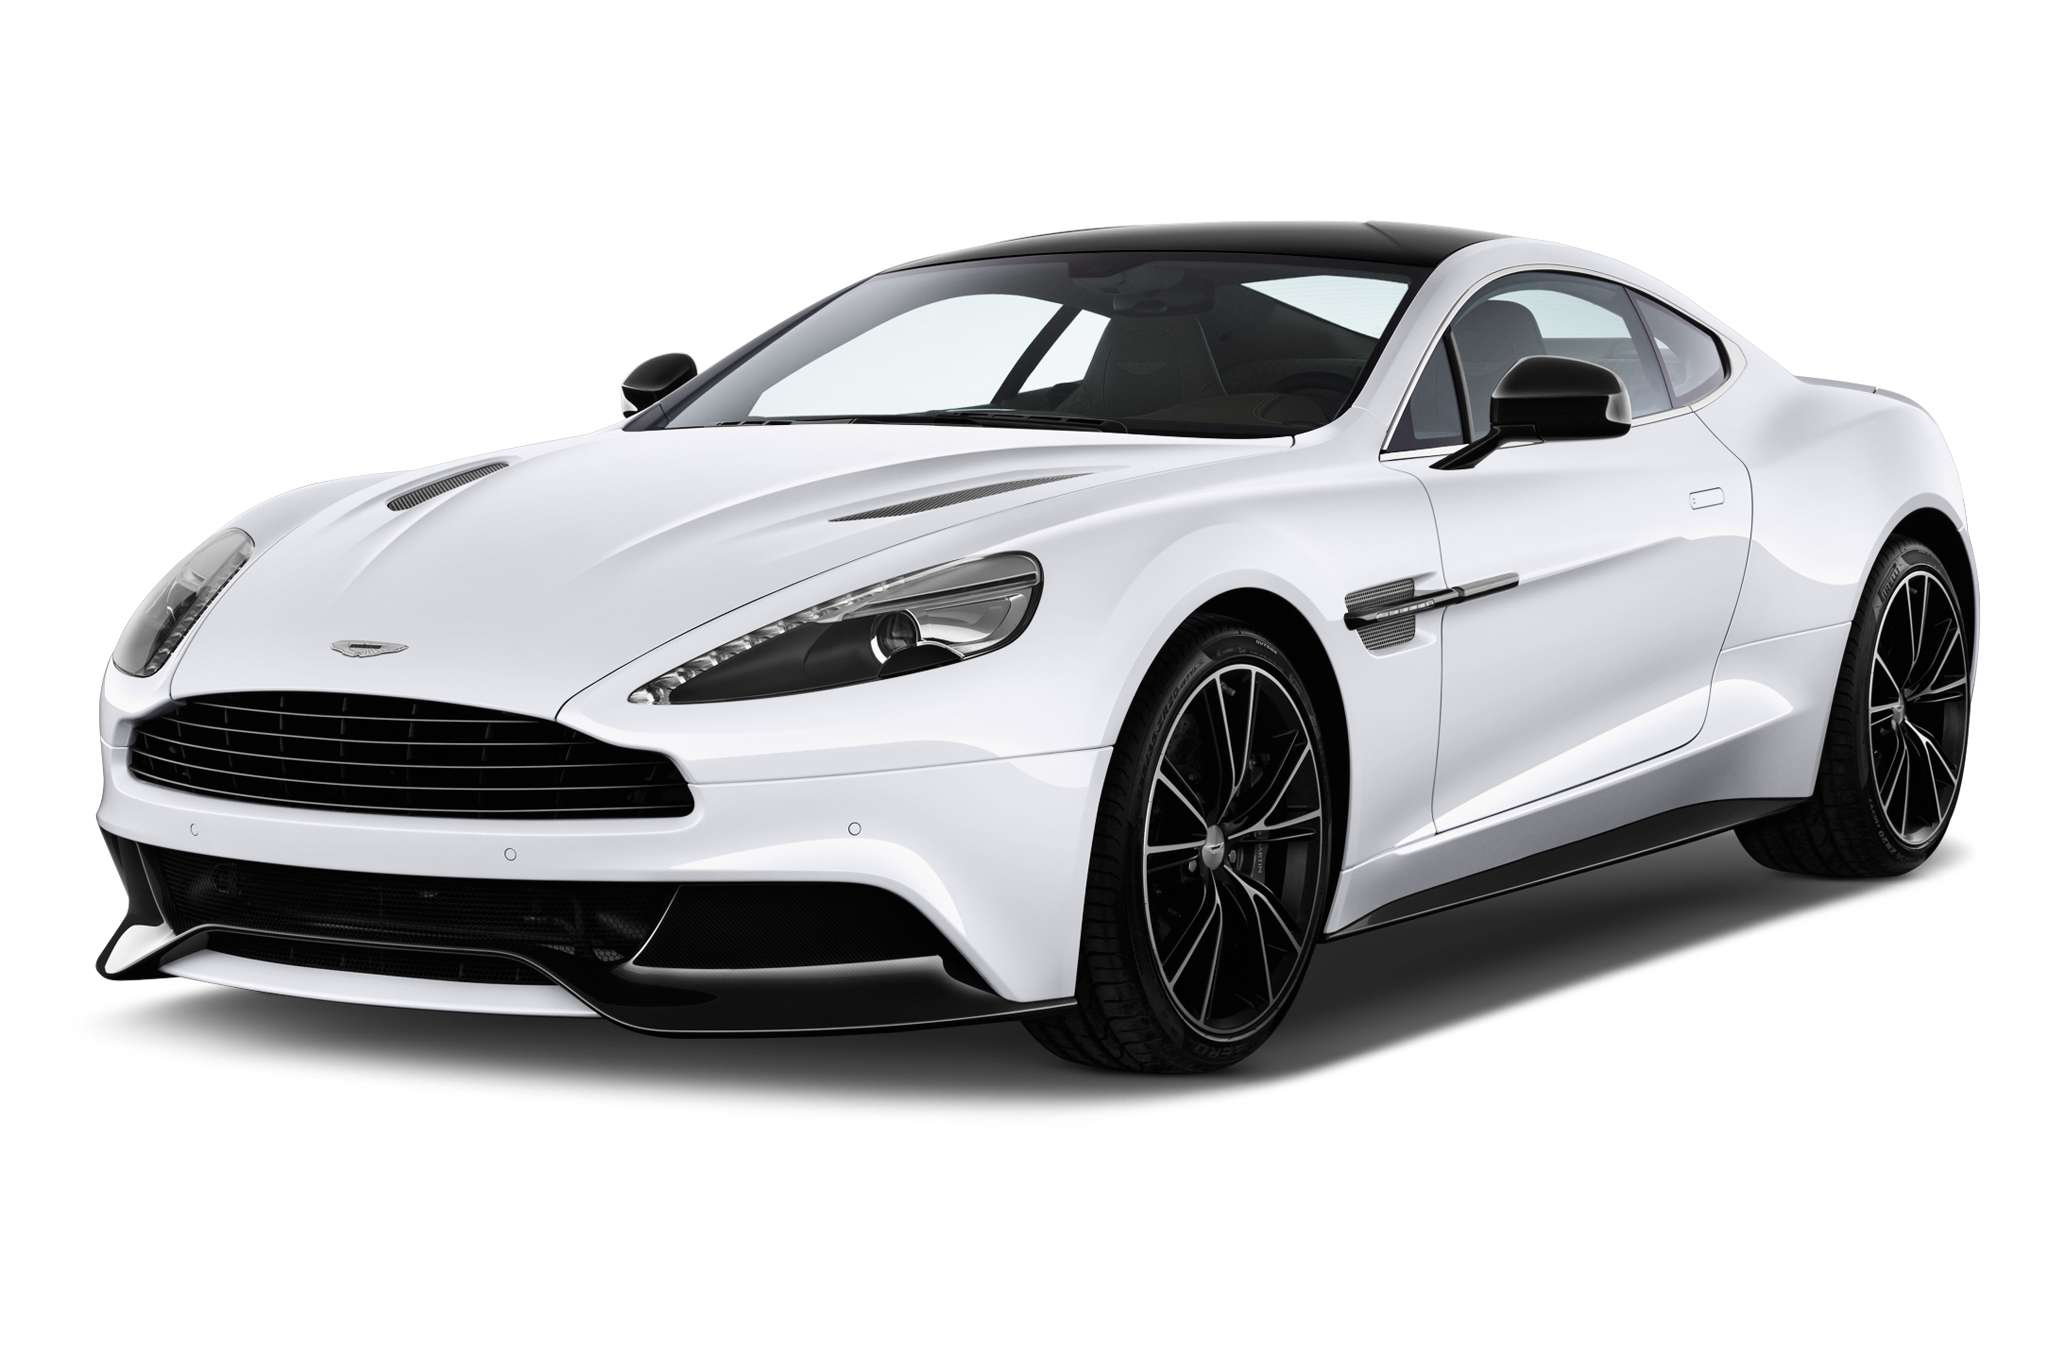 2017 Aston Martin Vanquish Reviews and Rating | Motor Trend